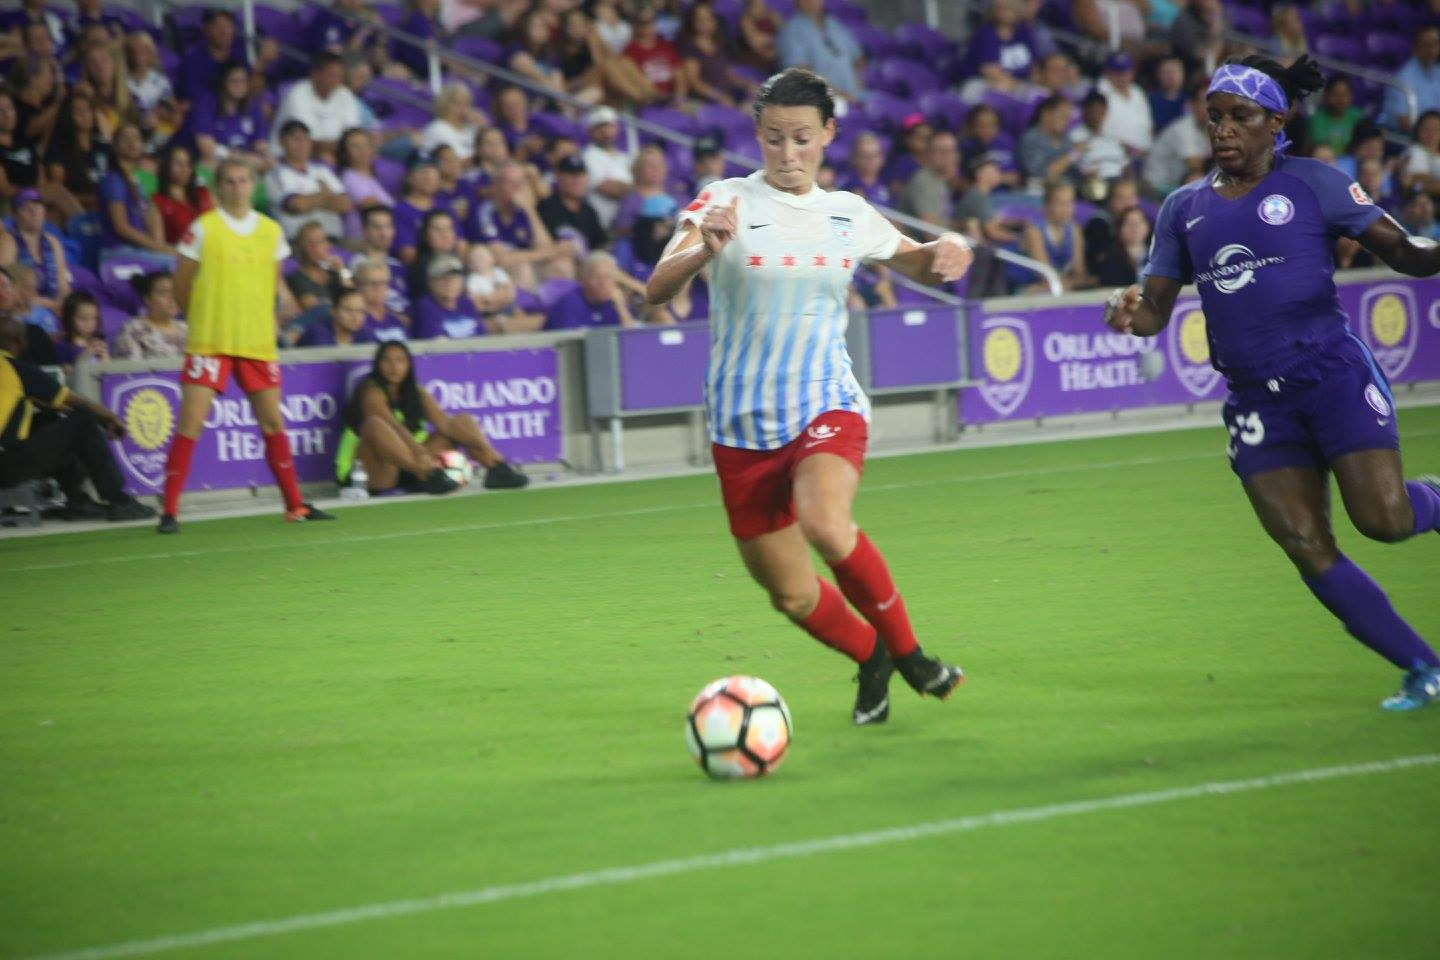 ORLANDO: The Orlando Pride and Chicago Red Stars had a heated match at Orlando City Stadium Saturday night. Photo: Willie David/Florida National News.